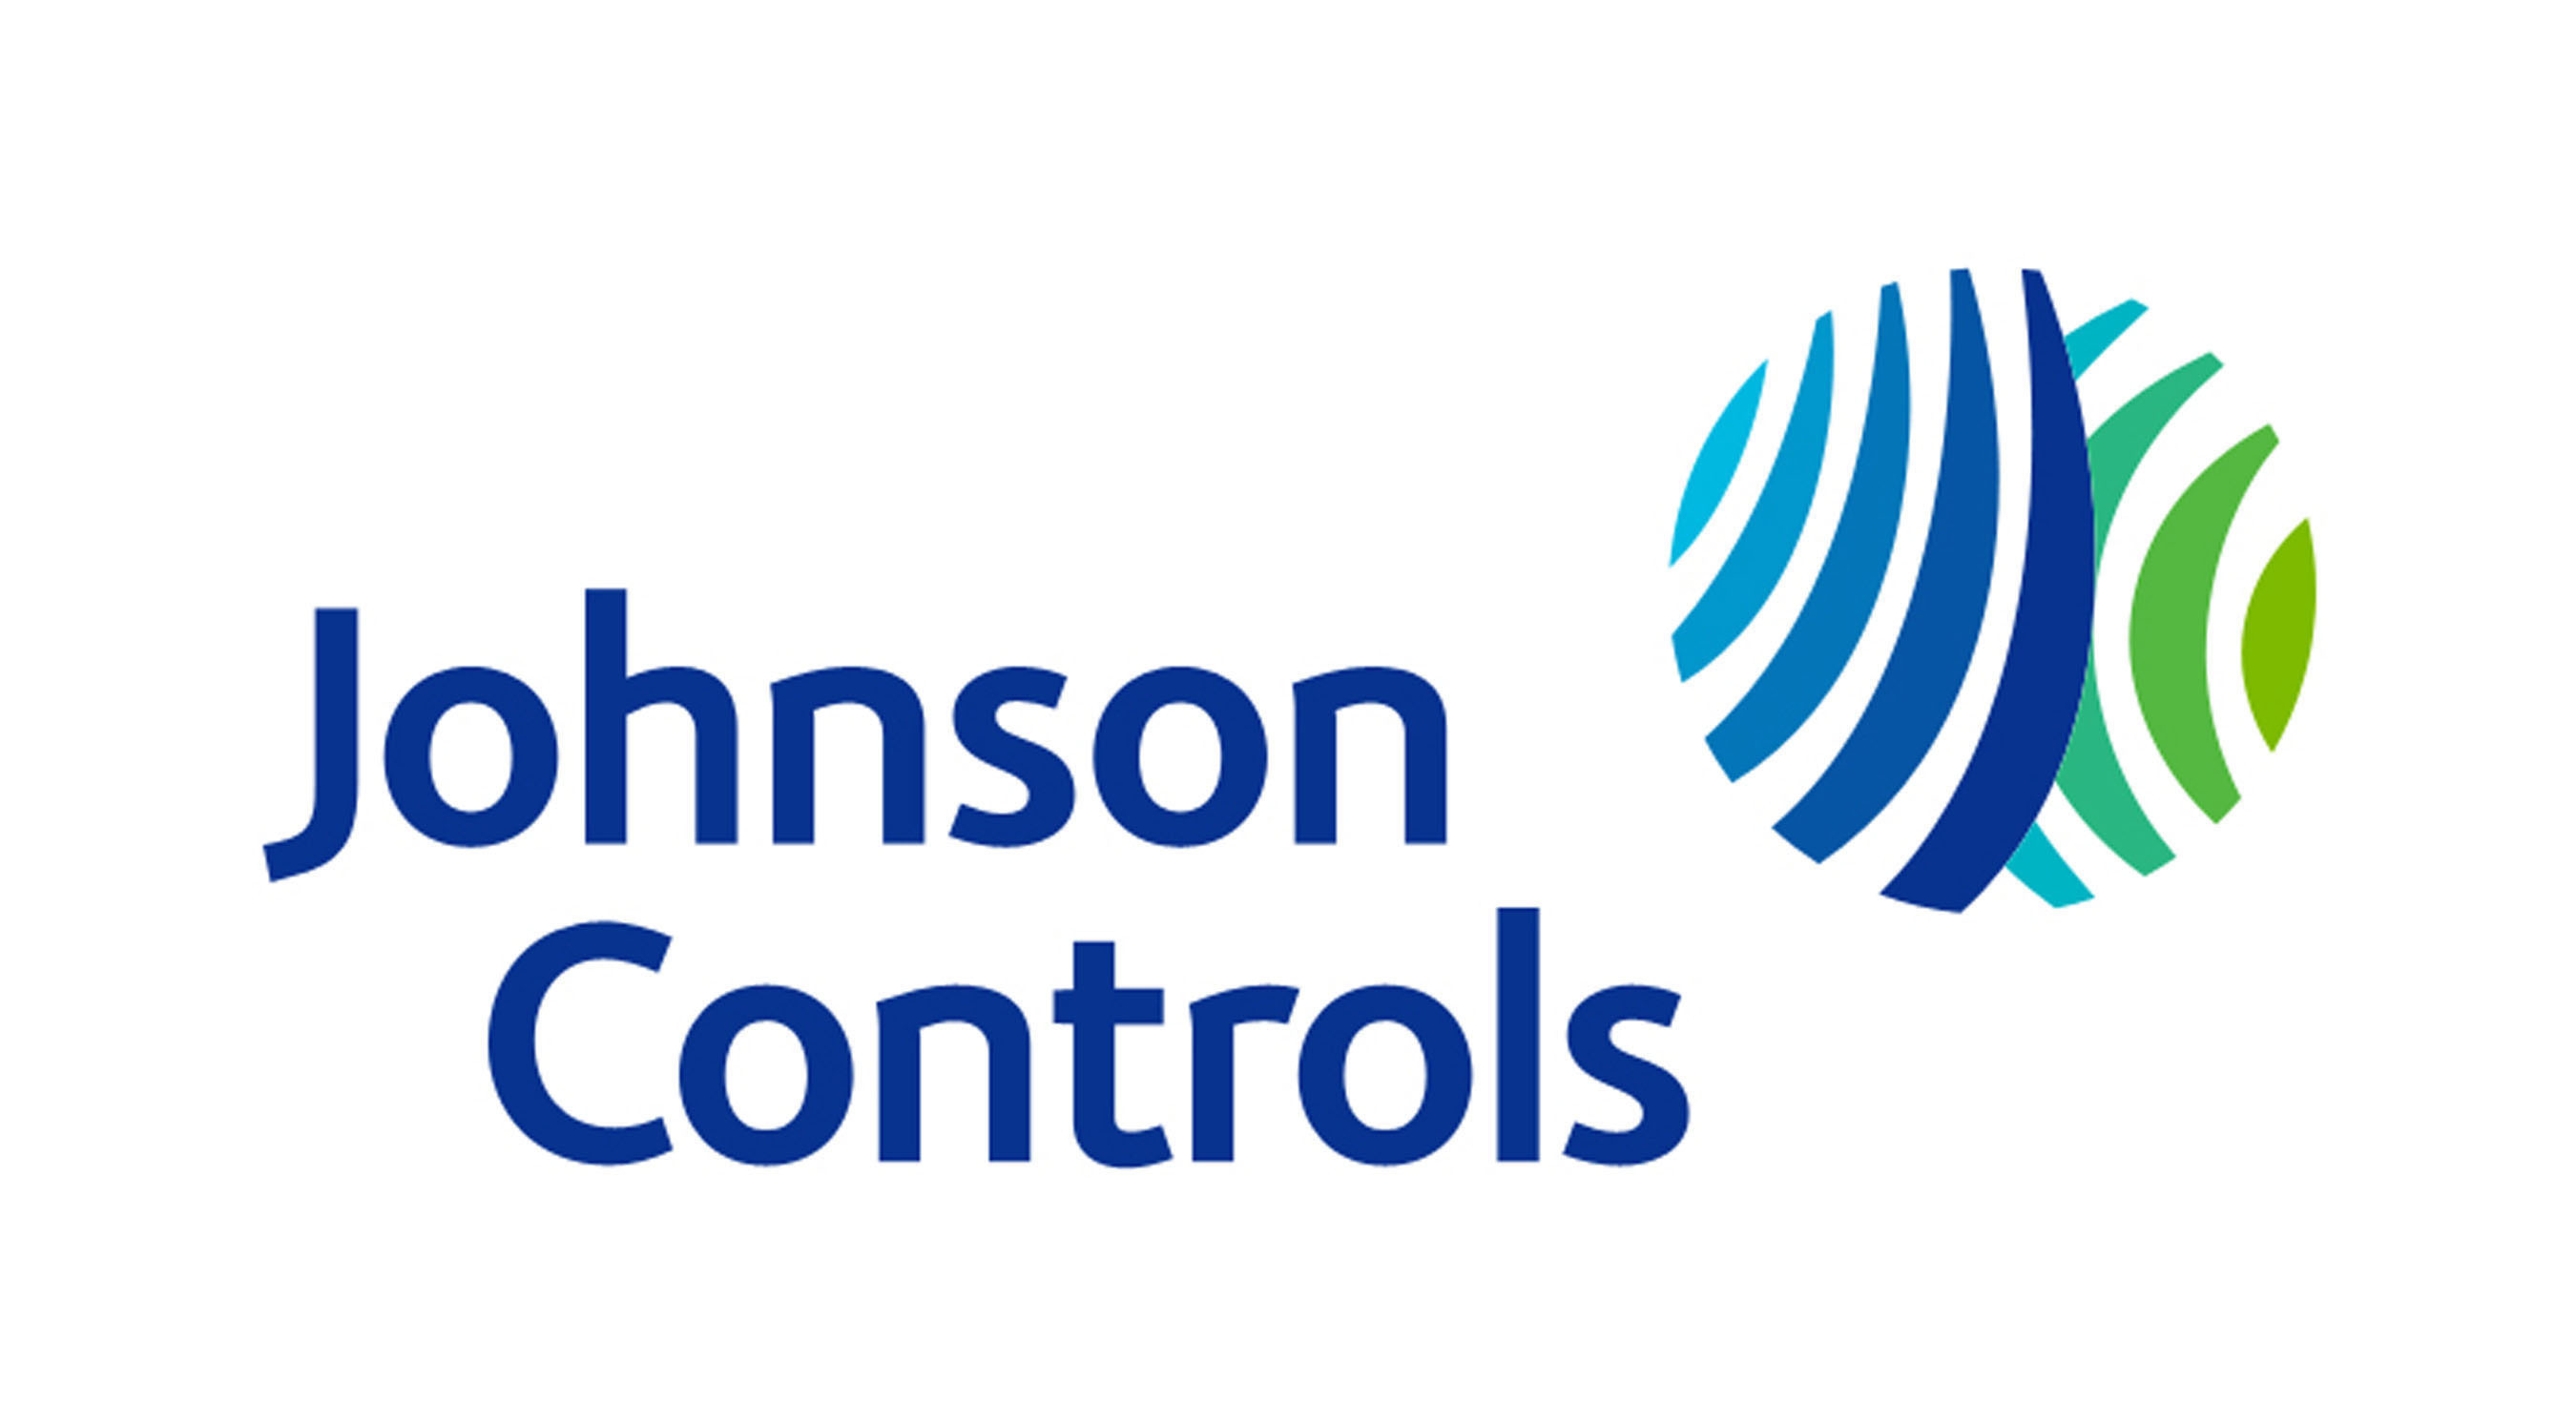 Johnson Controls announces quarterly dividend